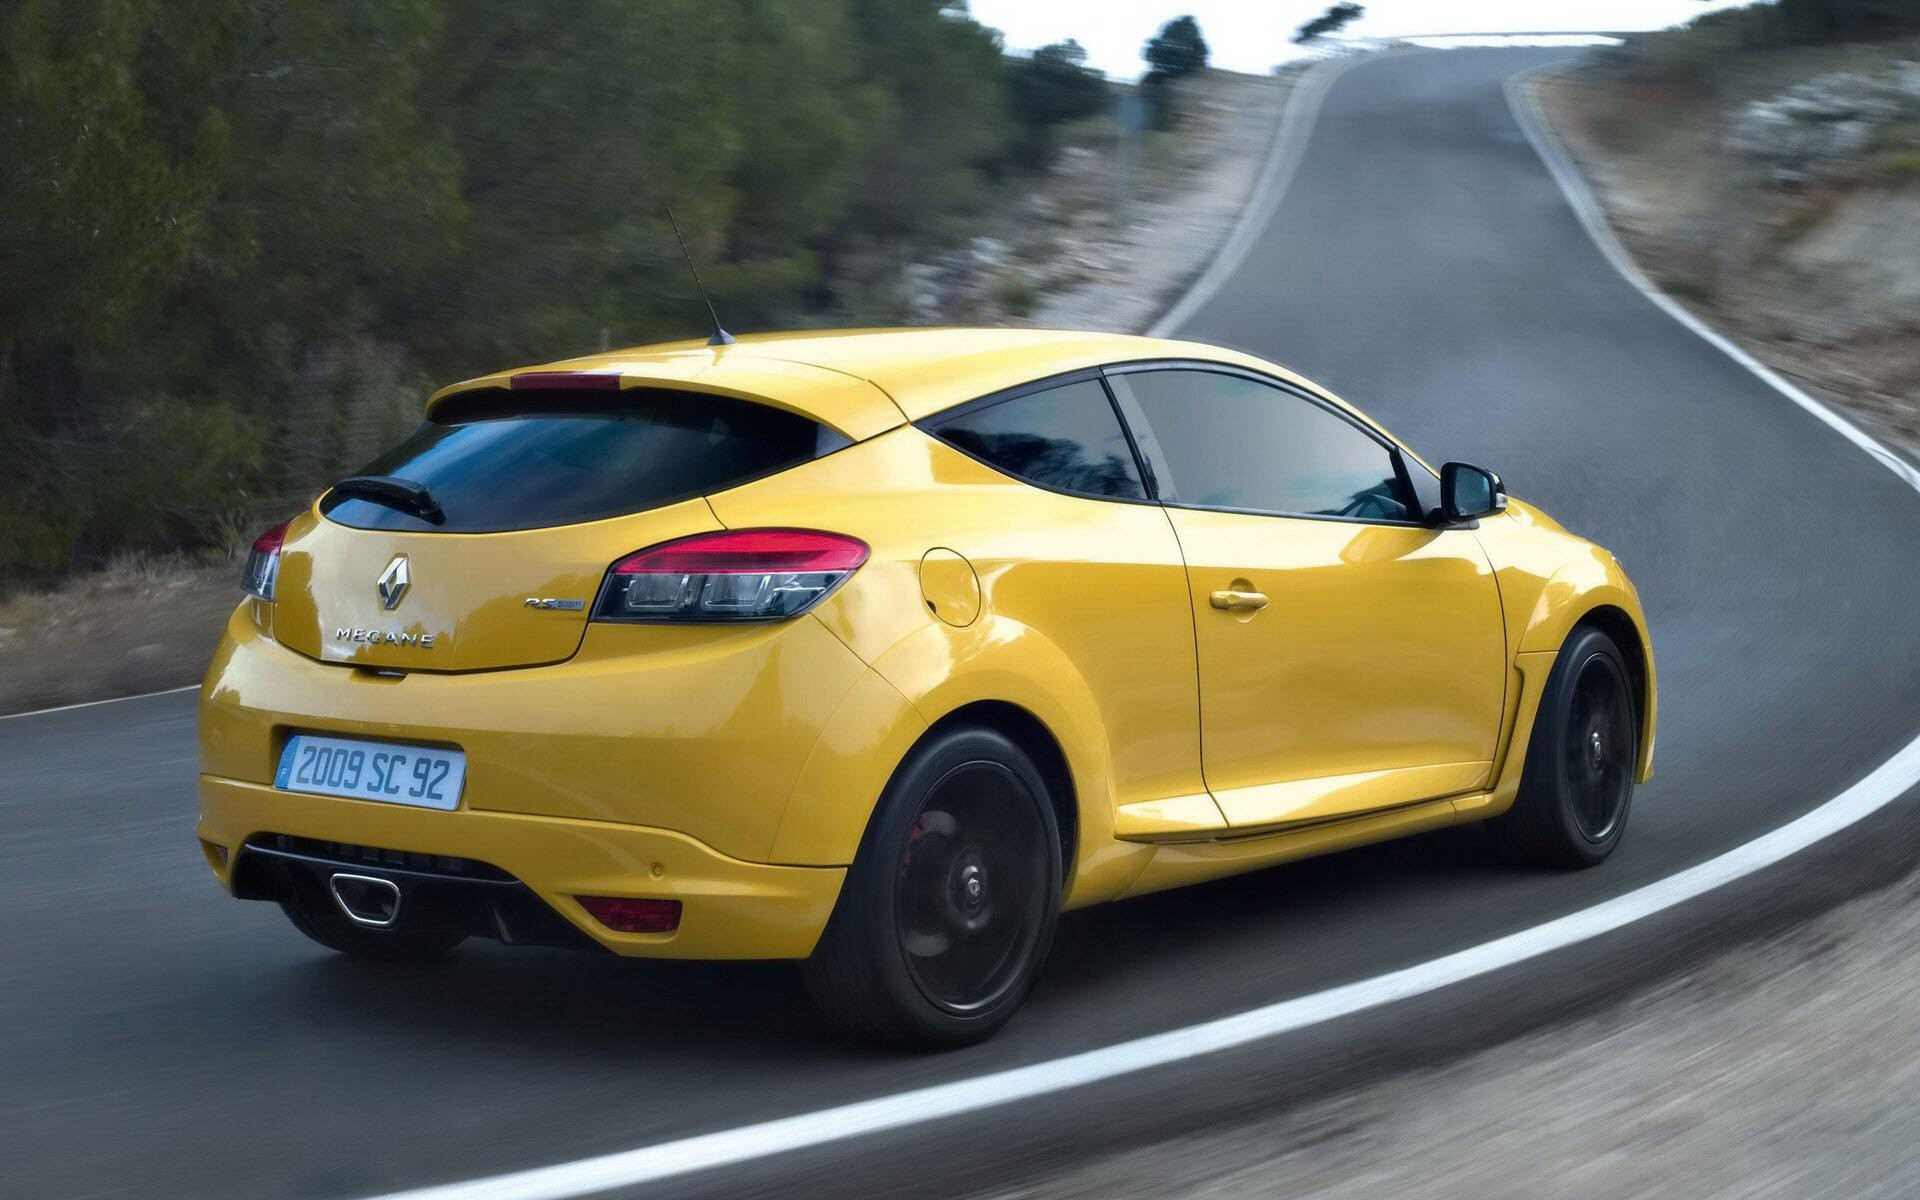 cars Renault Megane HD Wallpaper